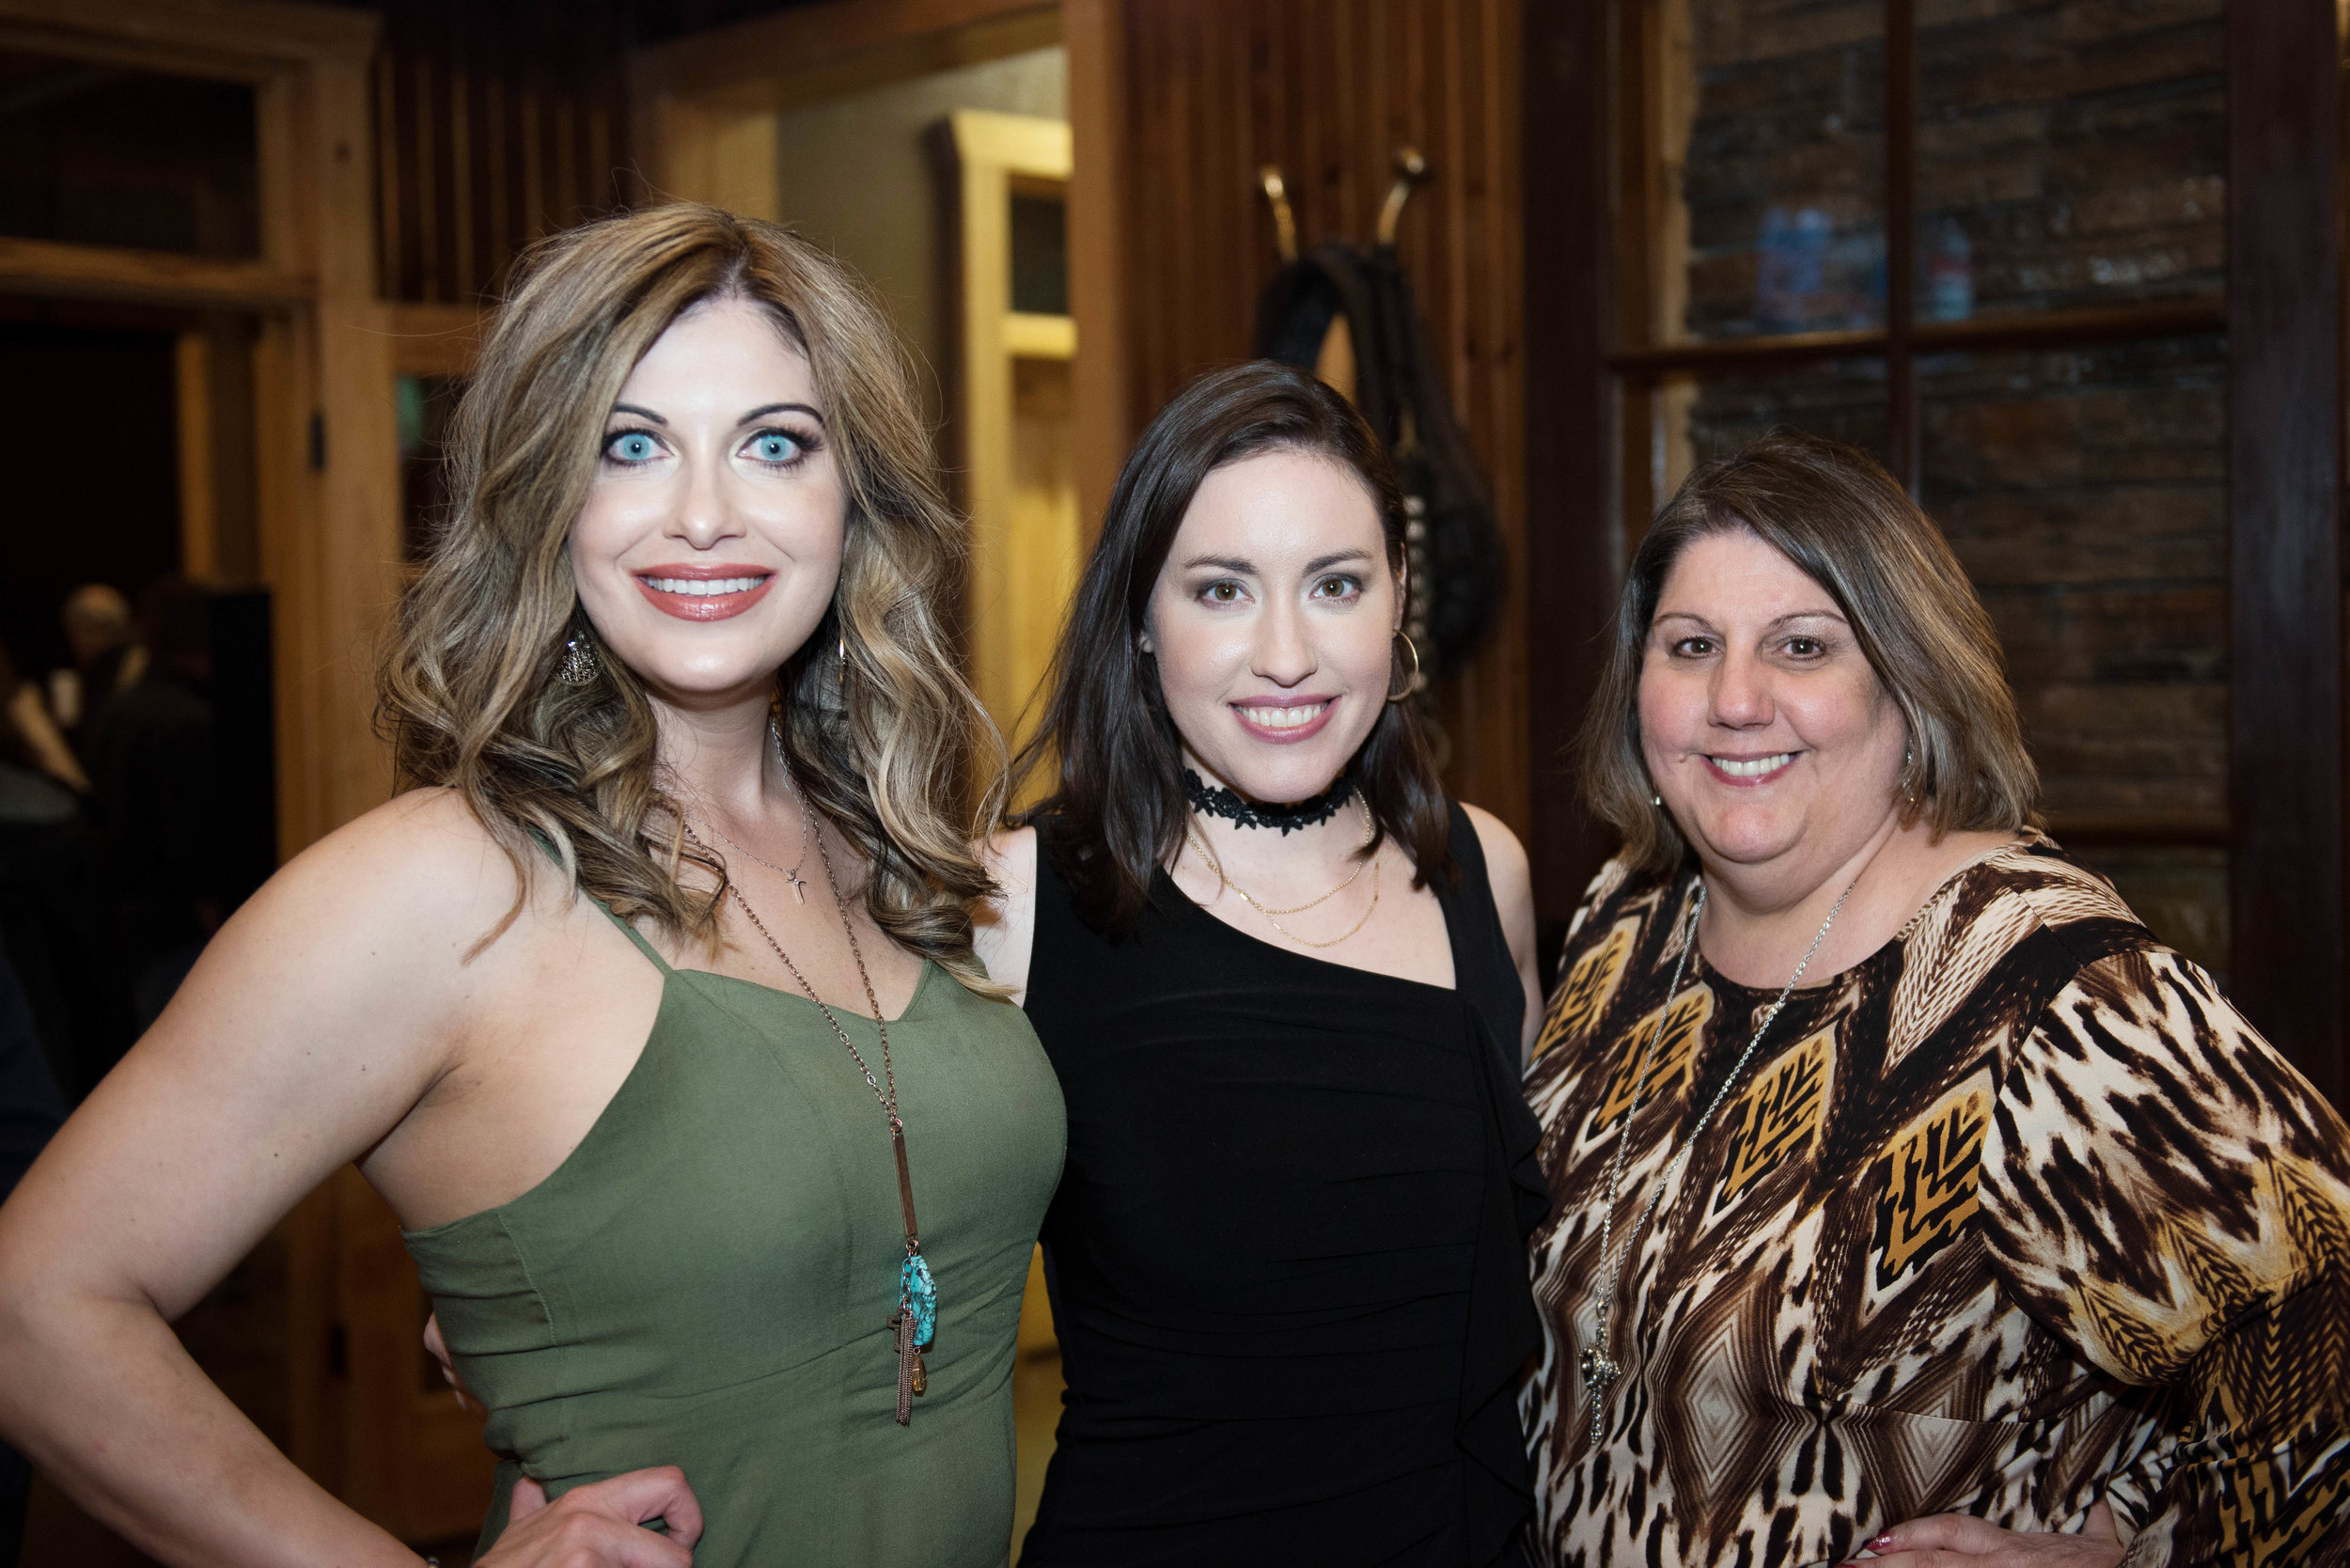 Erica Cain, Jennifer Lacefield and Karen Lansdale